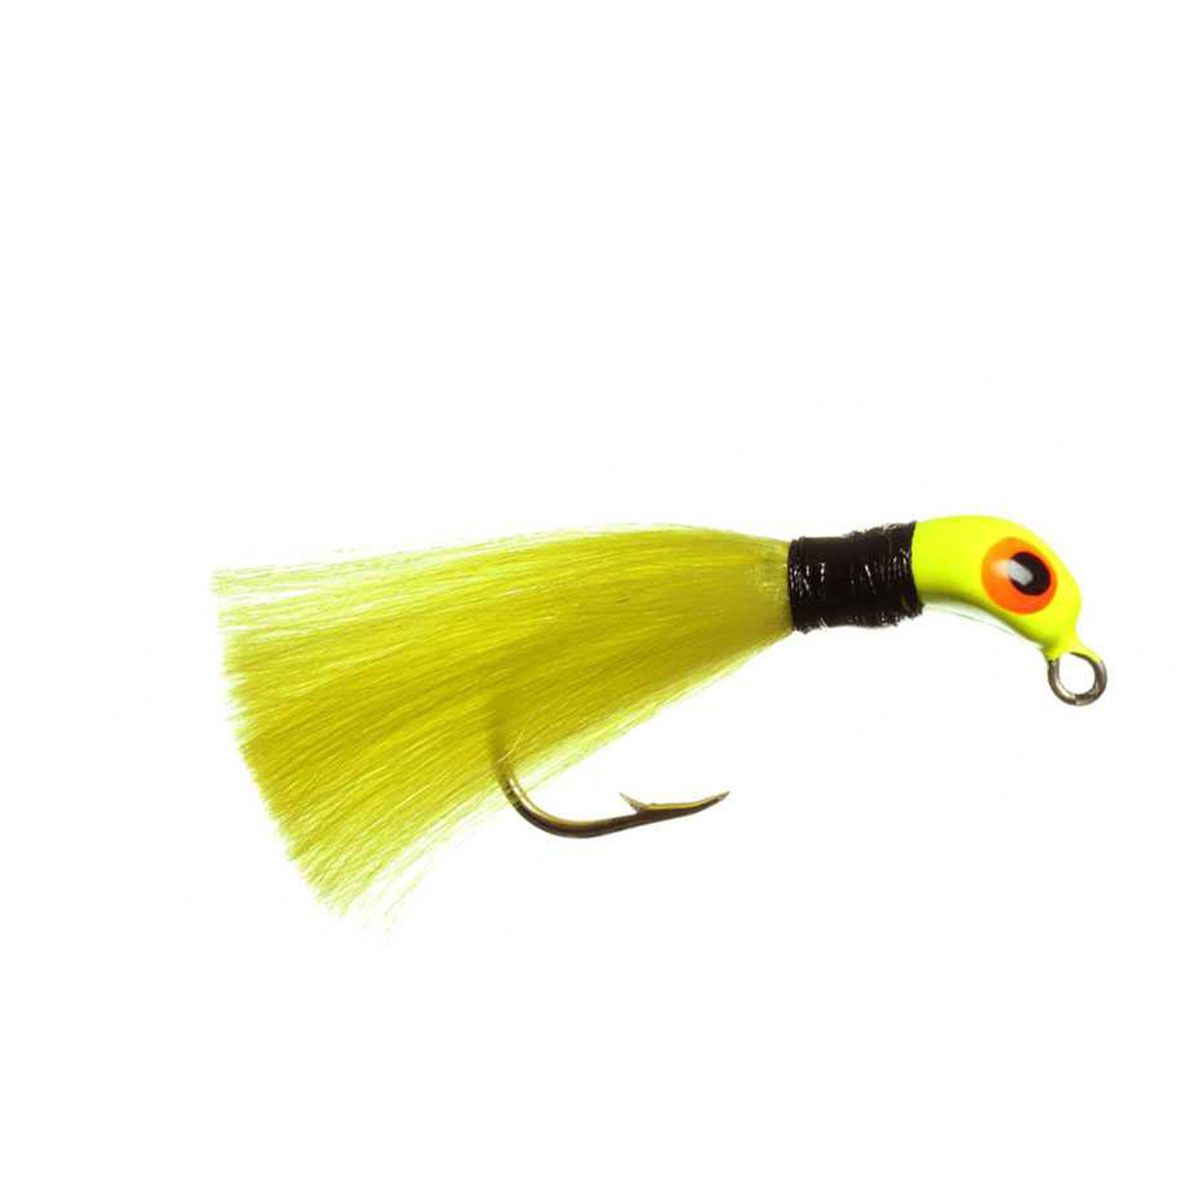 Isca Artificial Lori Jig Anti Enrosco P